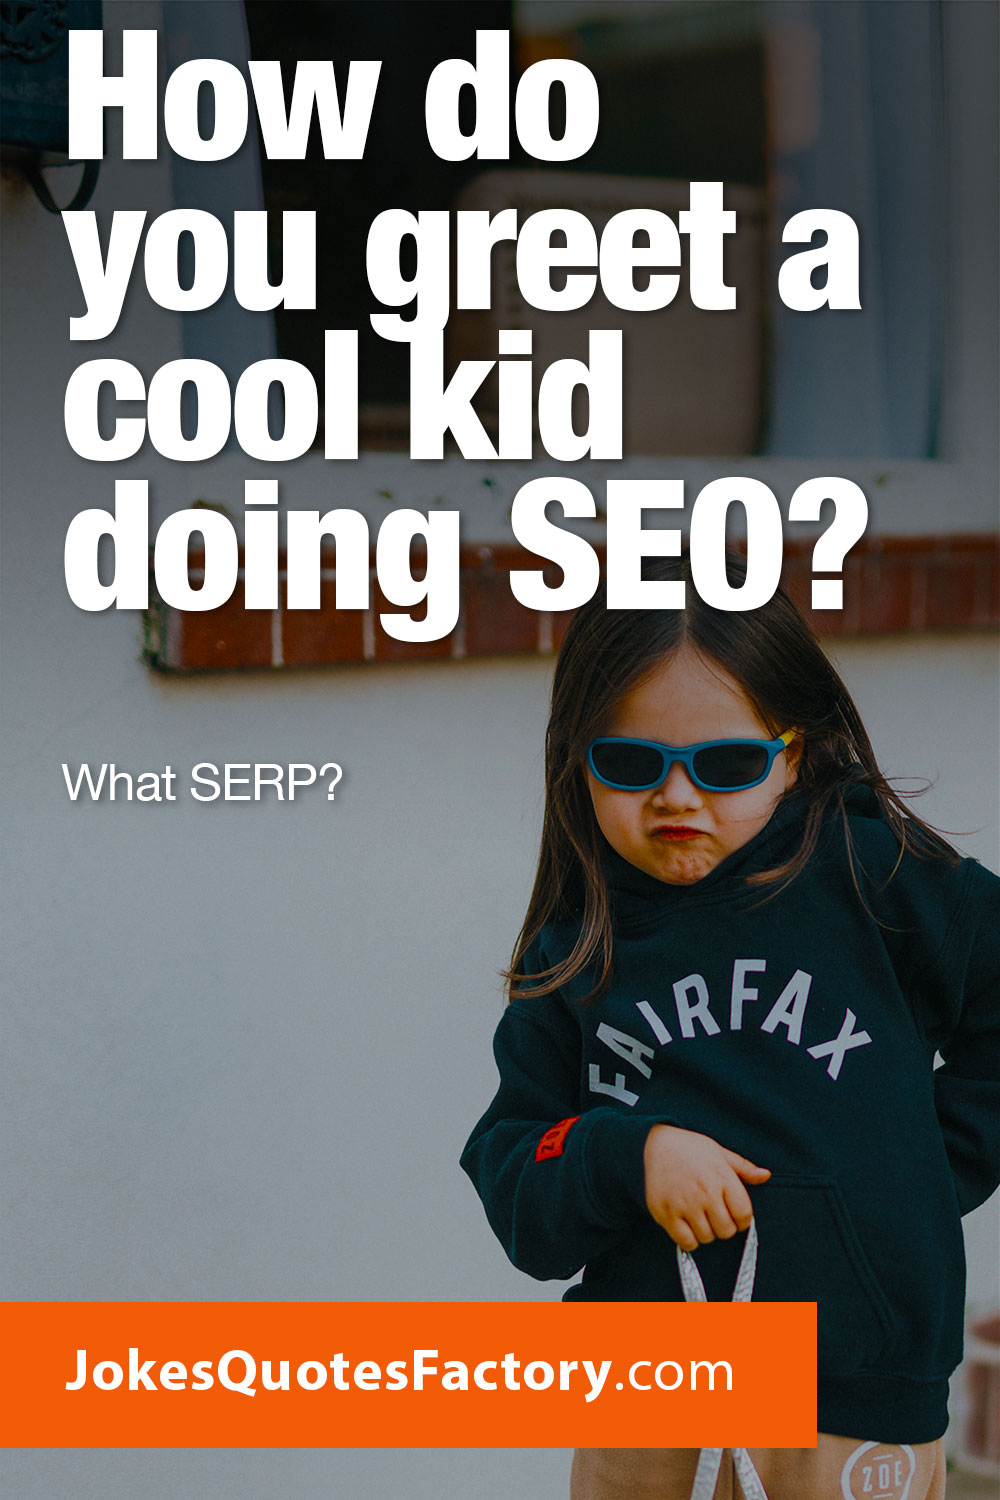 How do you greet a cool kid doing SEO? What SERP?